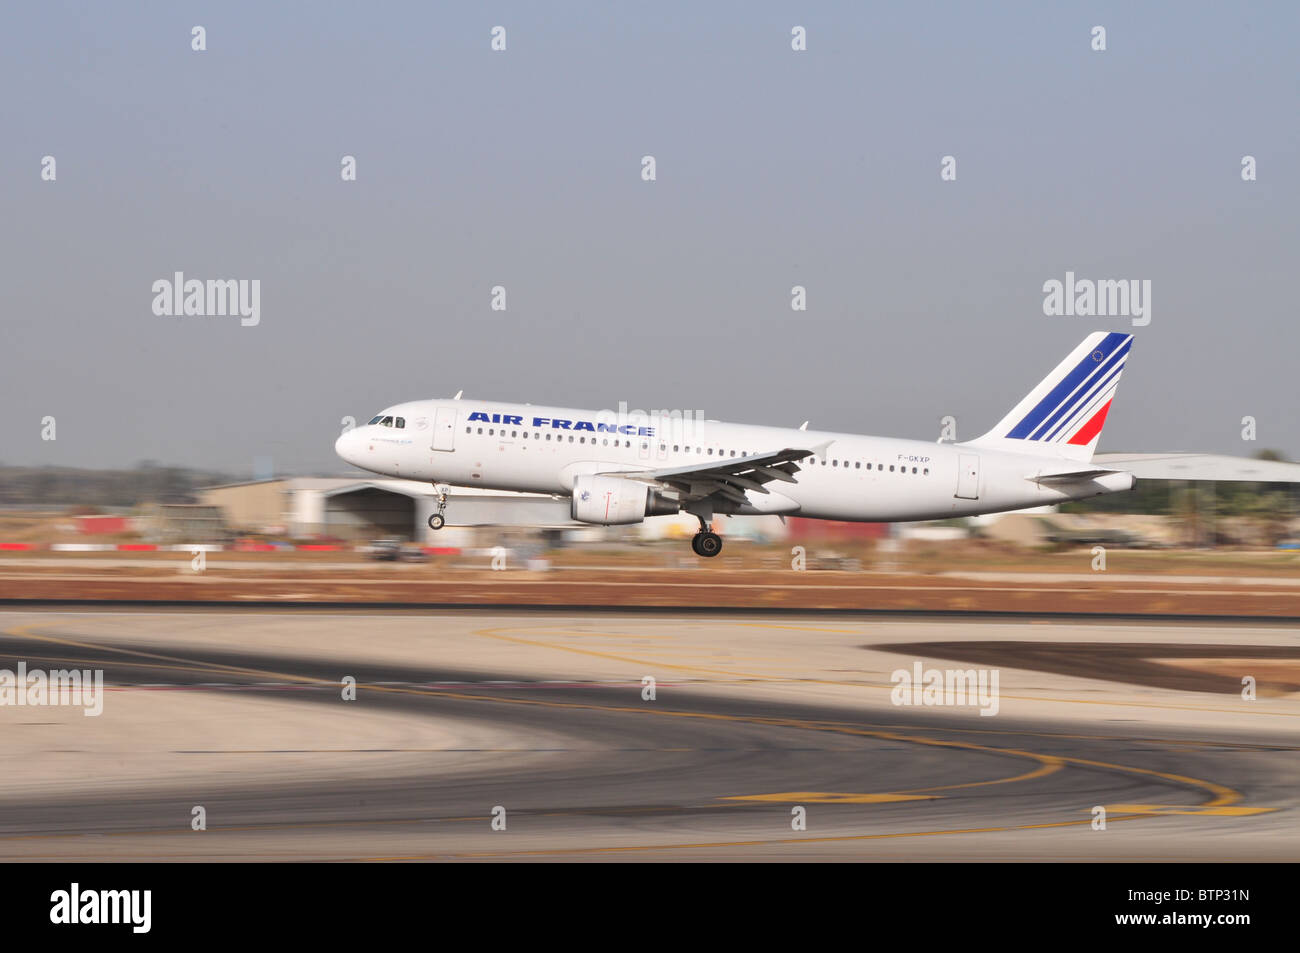 Israel, Ben-Gurion international Airport Air France Airbus A320-214 - Stock Image